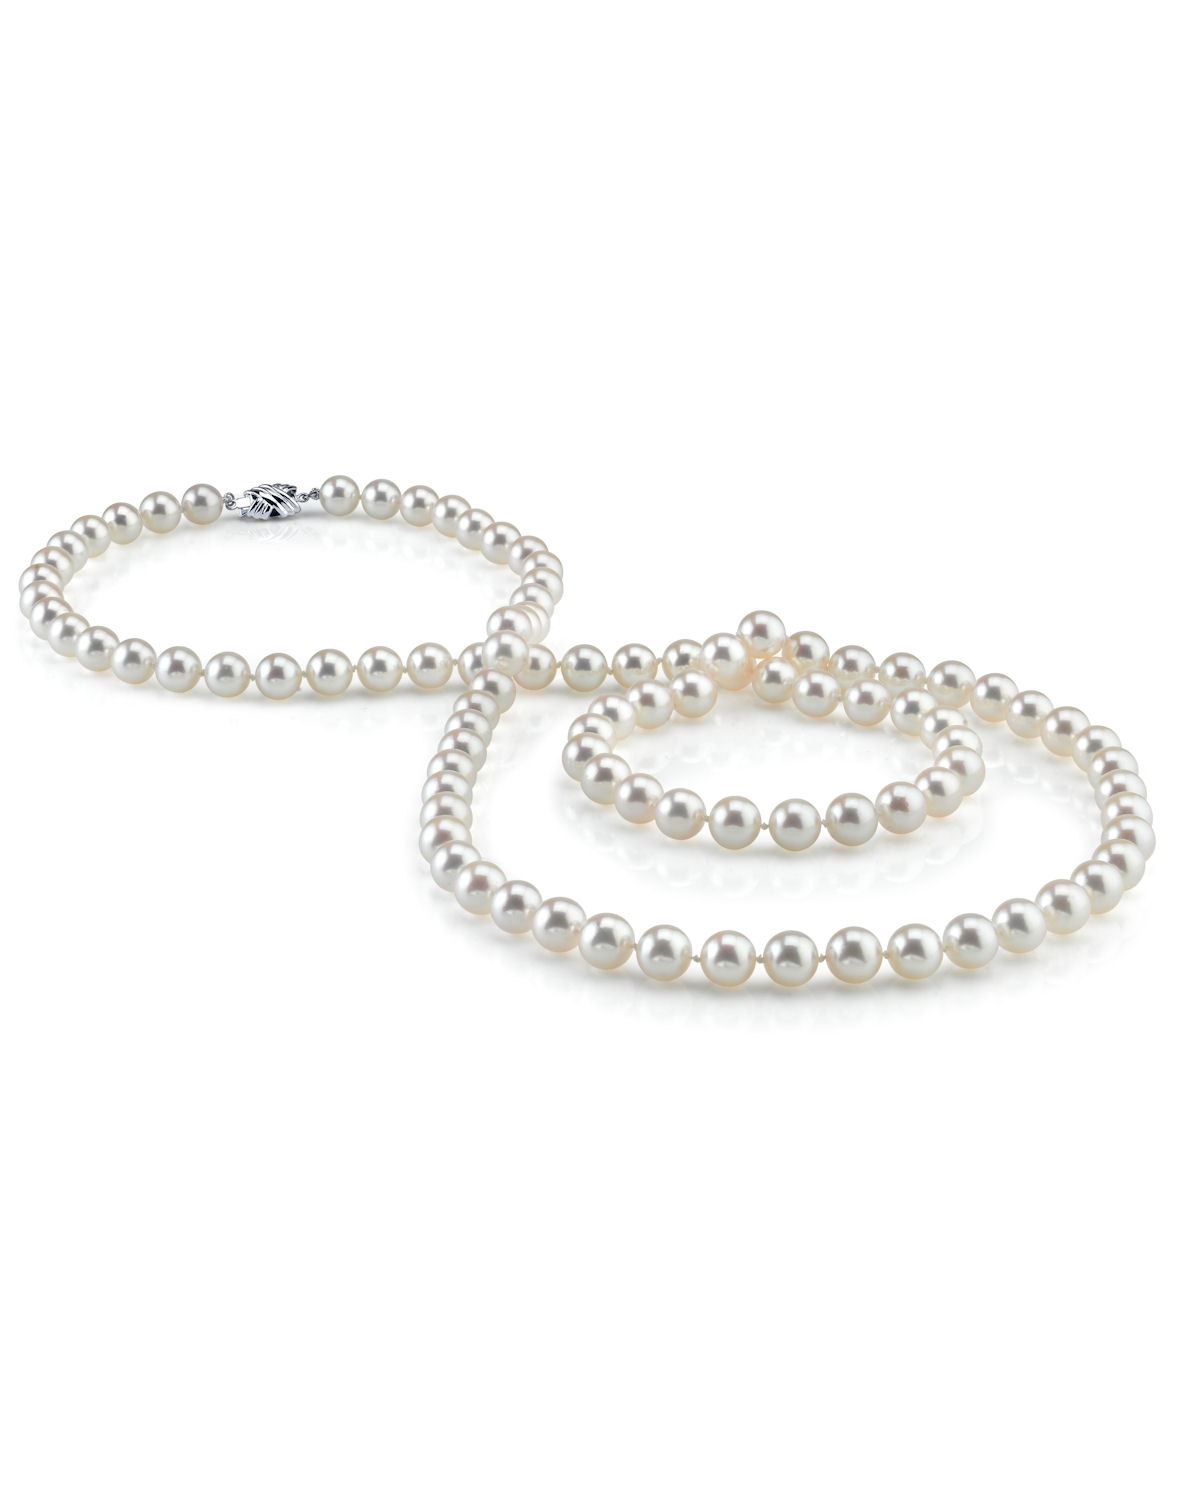 7-8mm Opera Length Freshwater Pearl Necklace